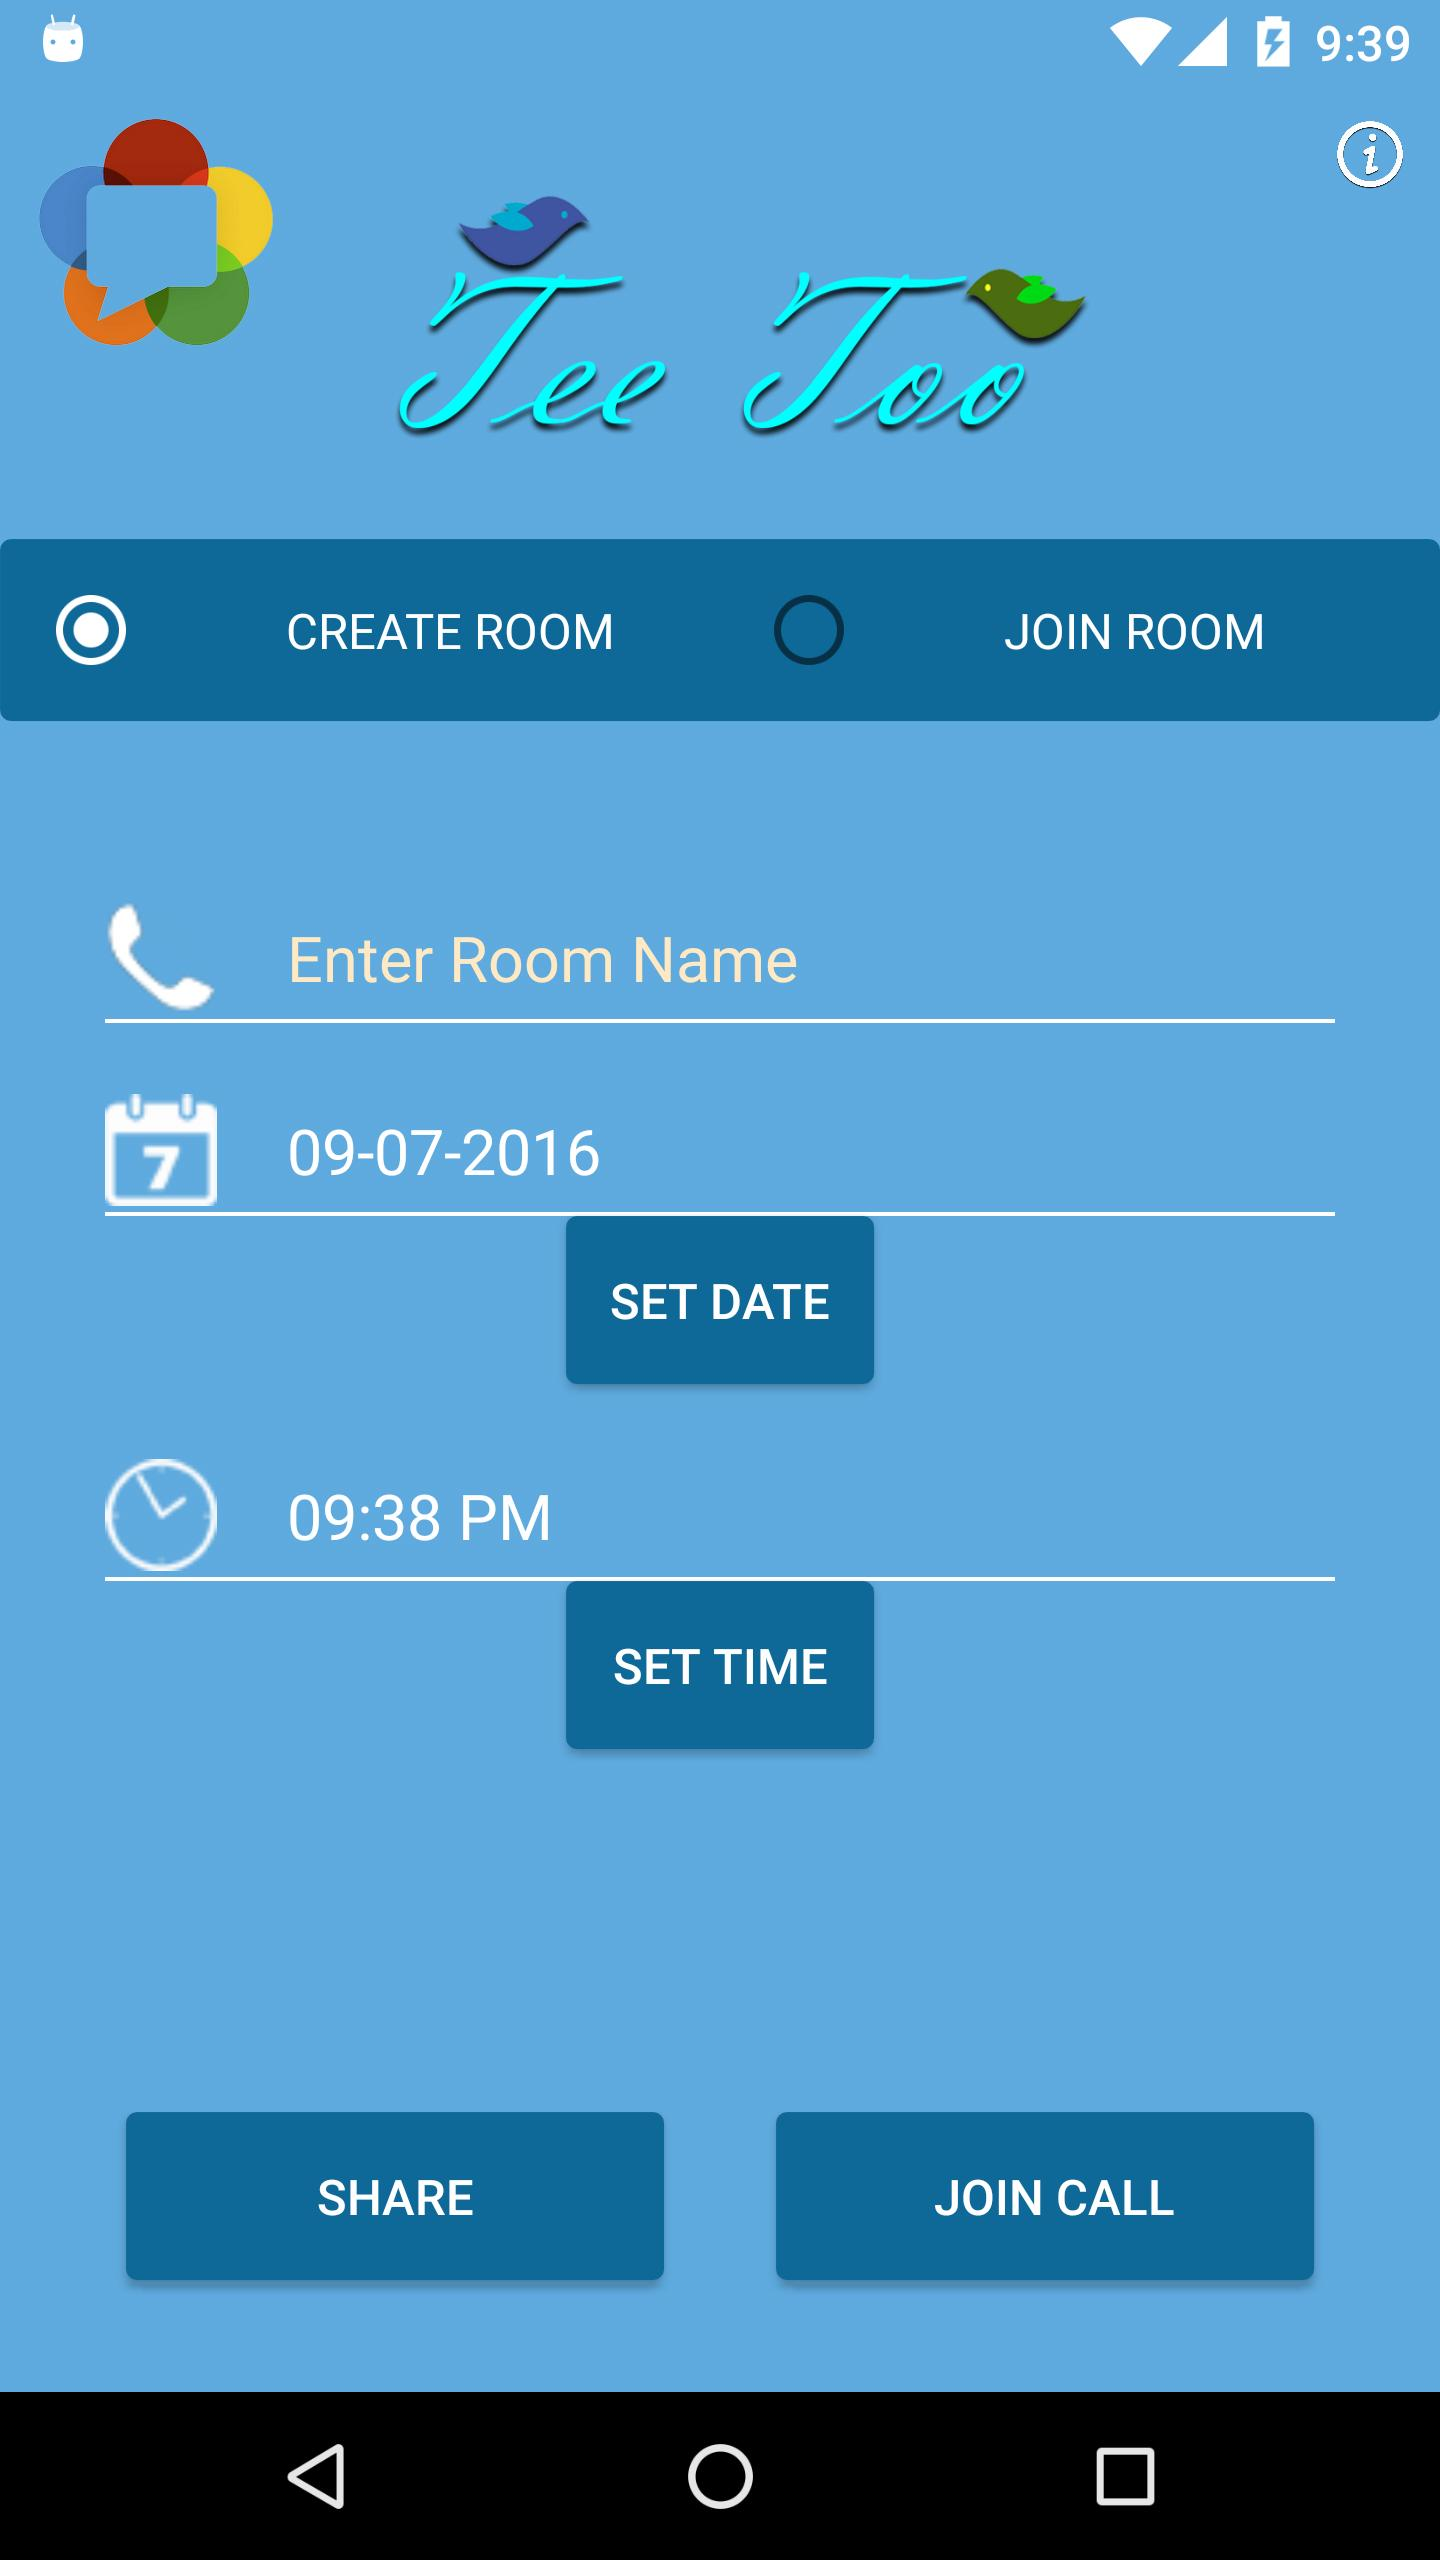 Tee Too Video Call for Android - APK Download